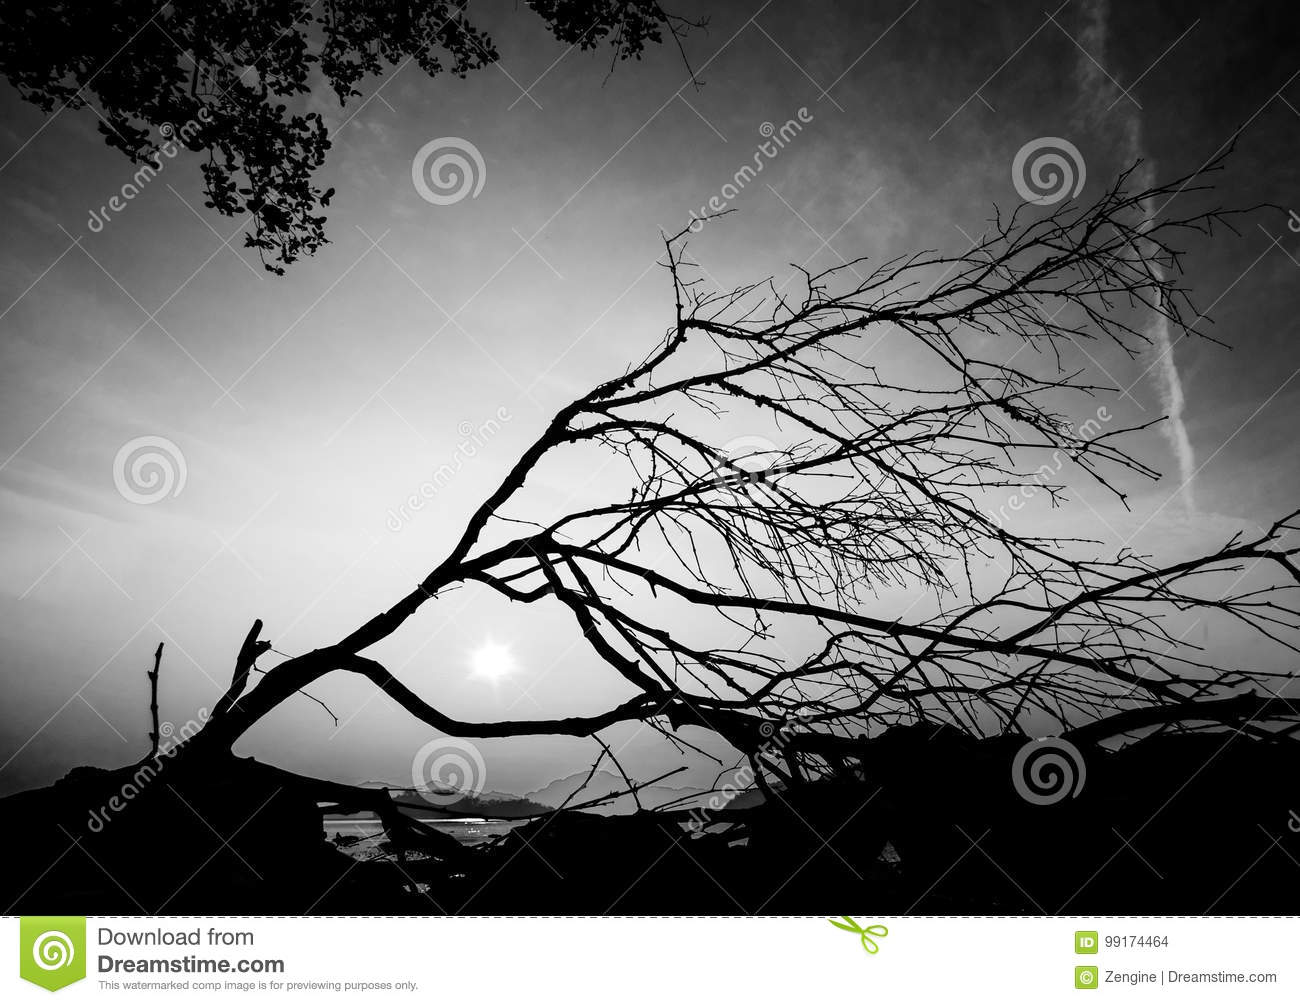 Tree silhouette with meaningful shape abstract black and white photo